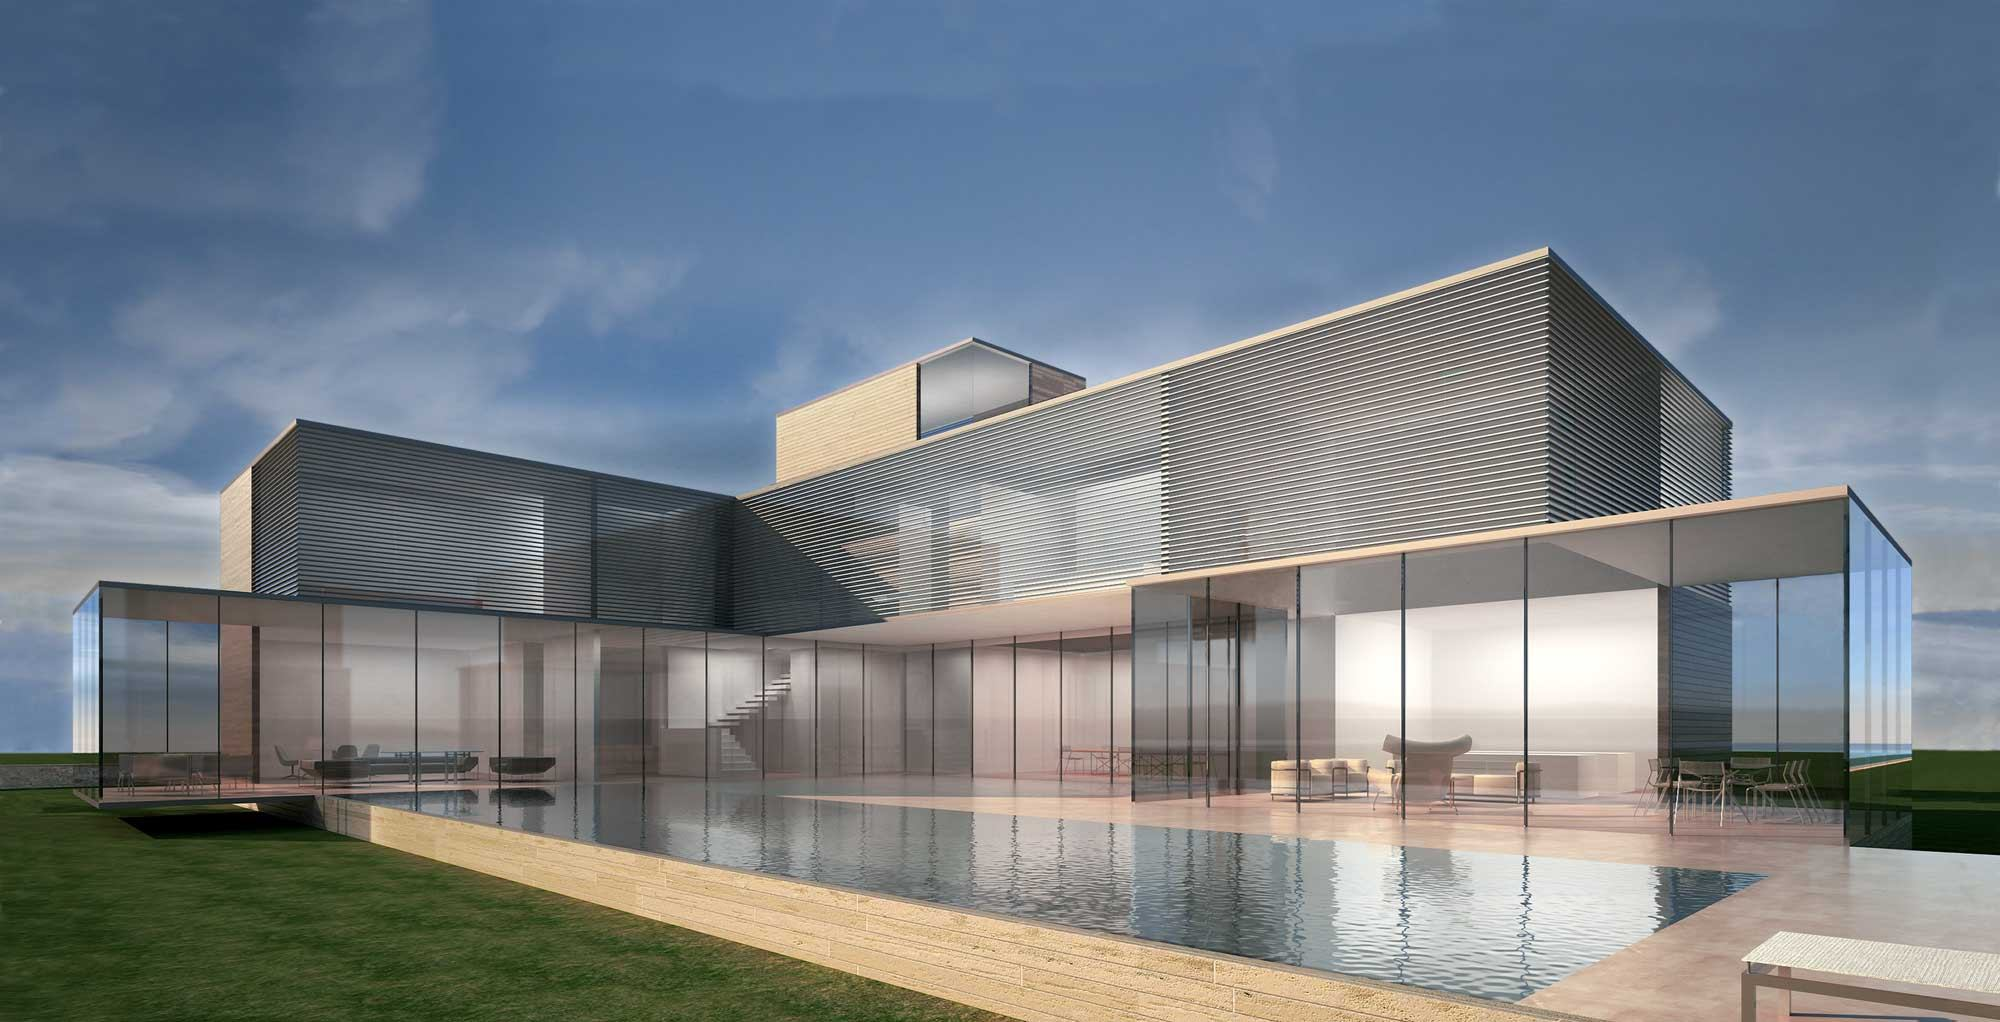 new projects by david jameson architect